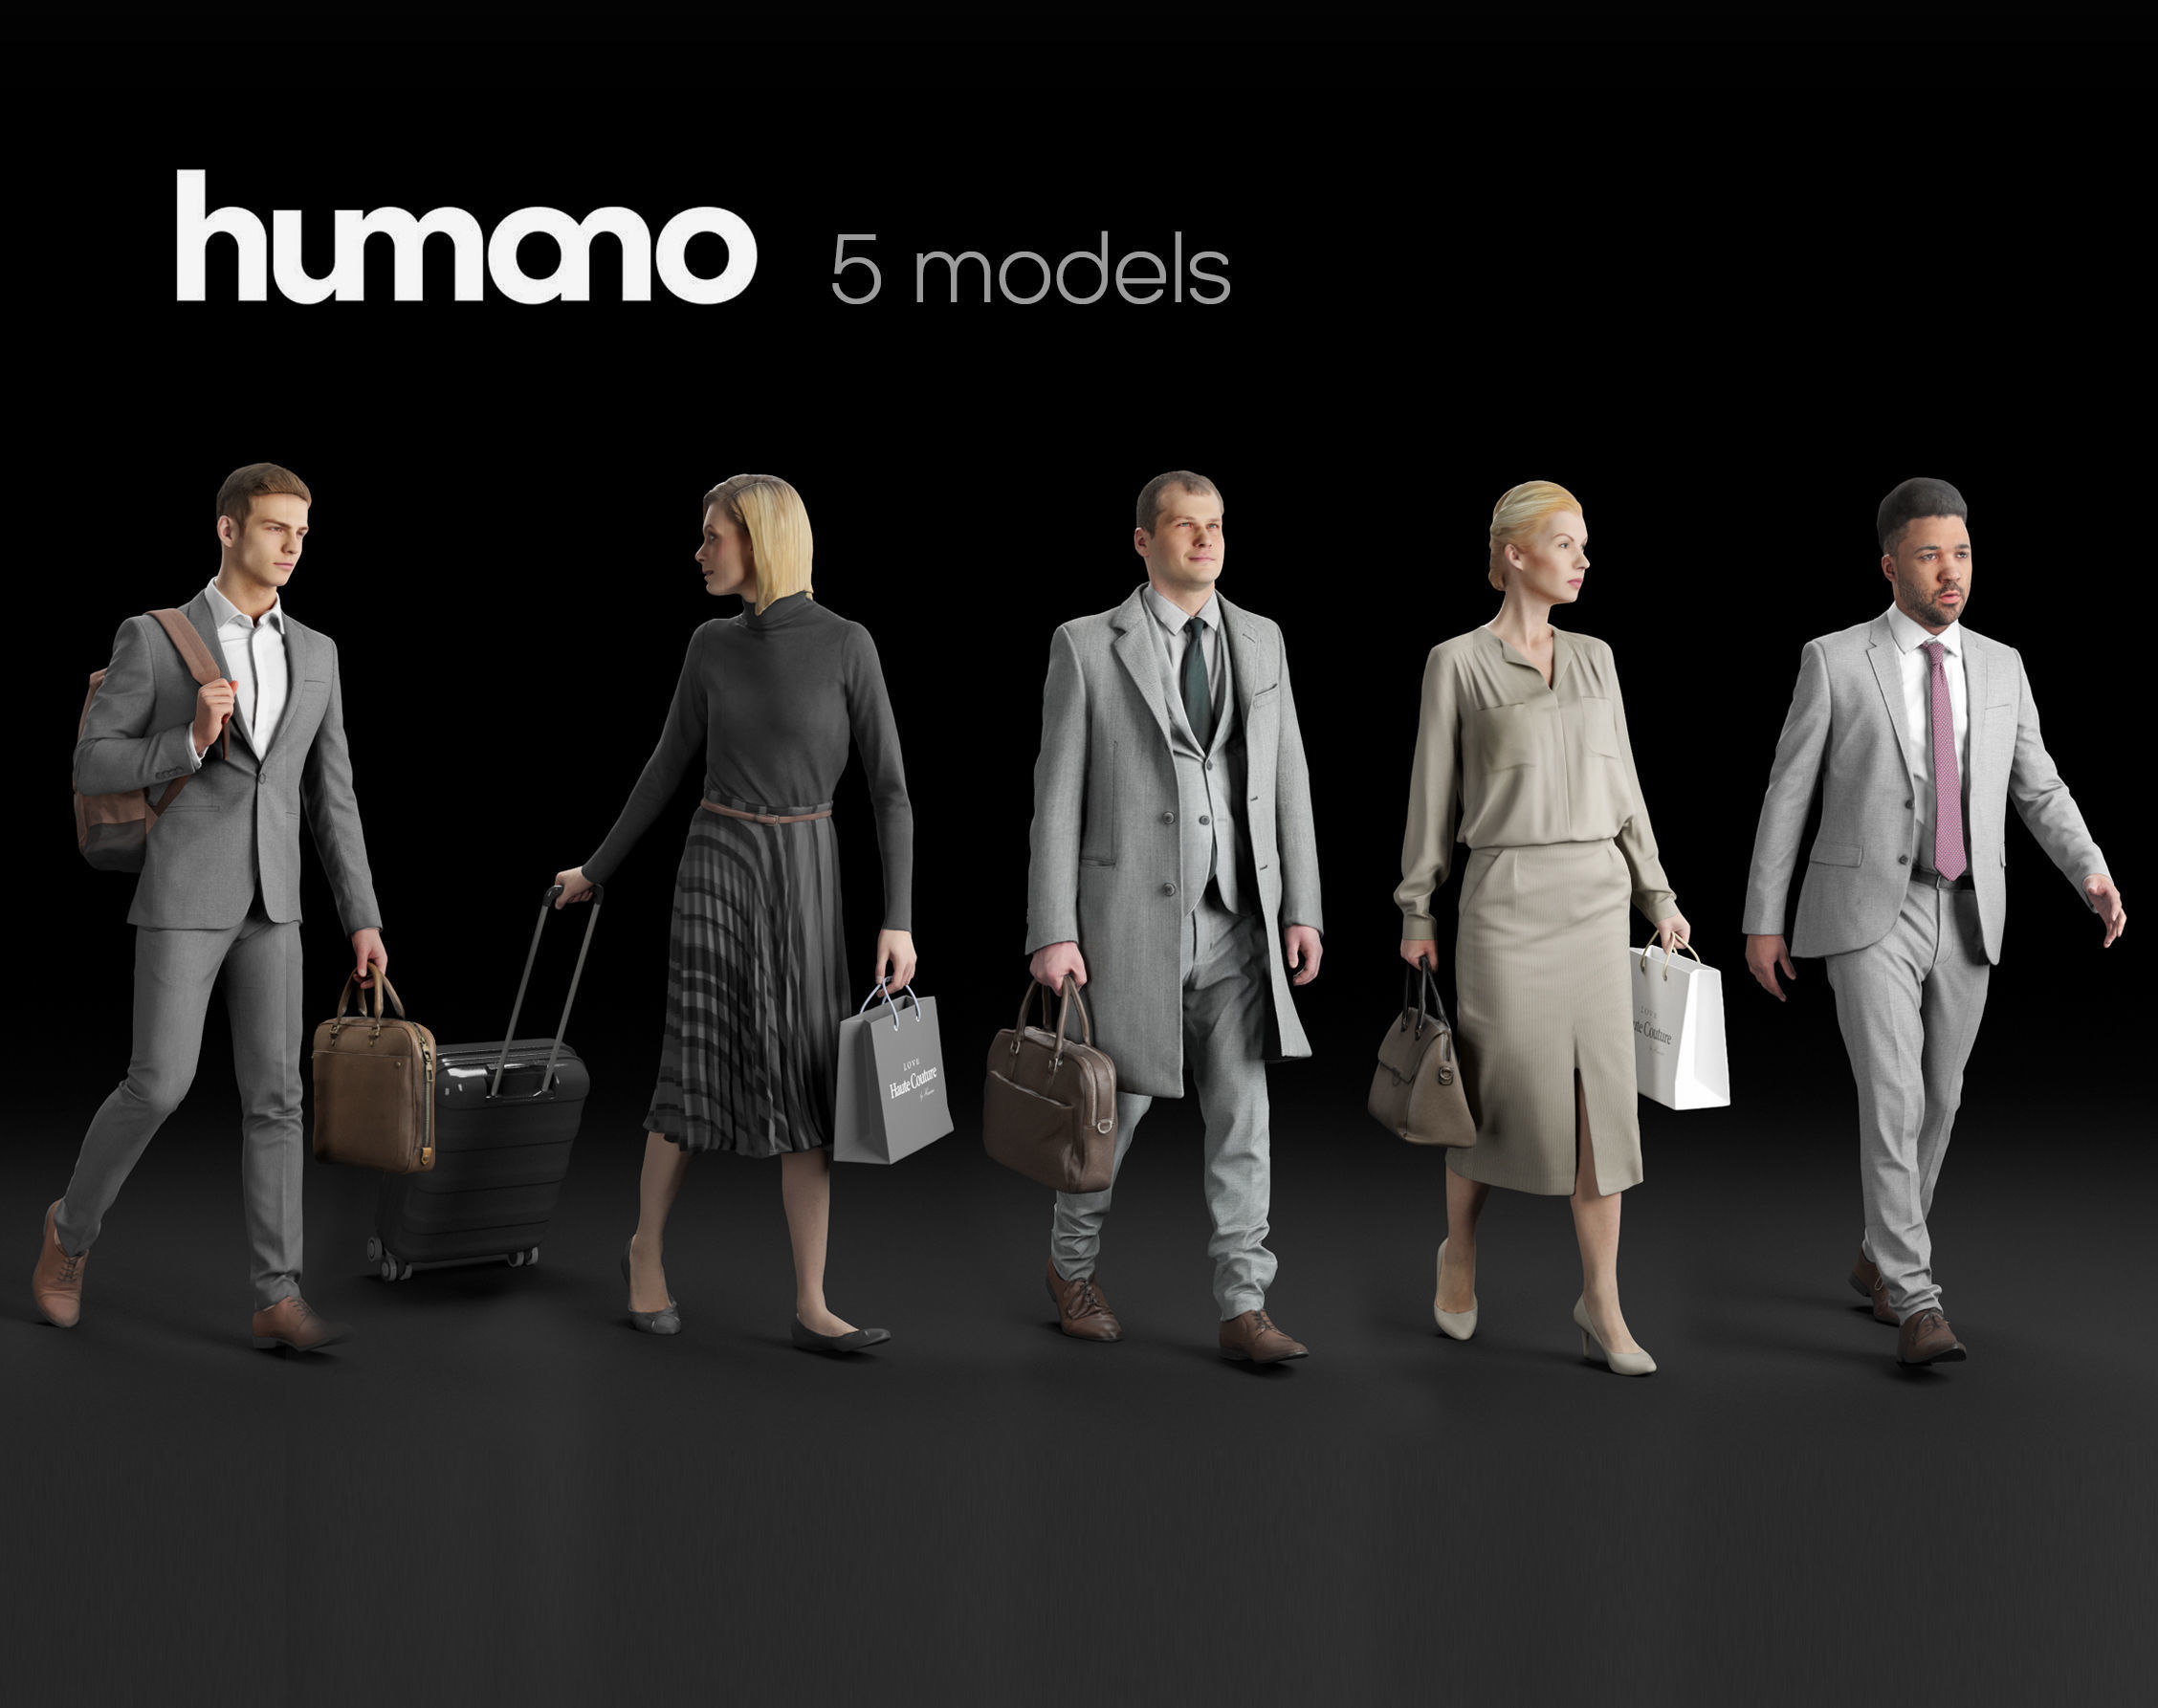 Humano 5-Pack - PEOPLE - STREET - TRAVELING - 5x 3D models 03A